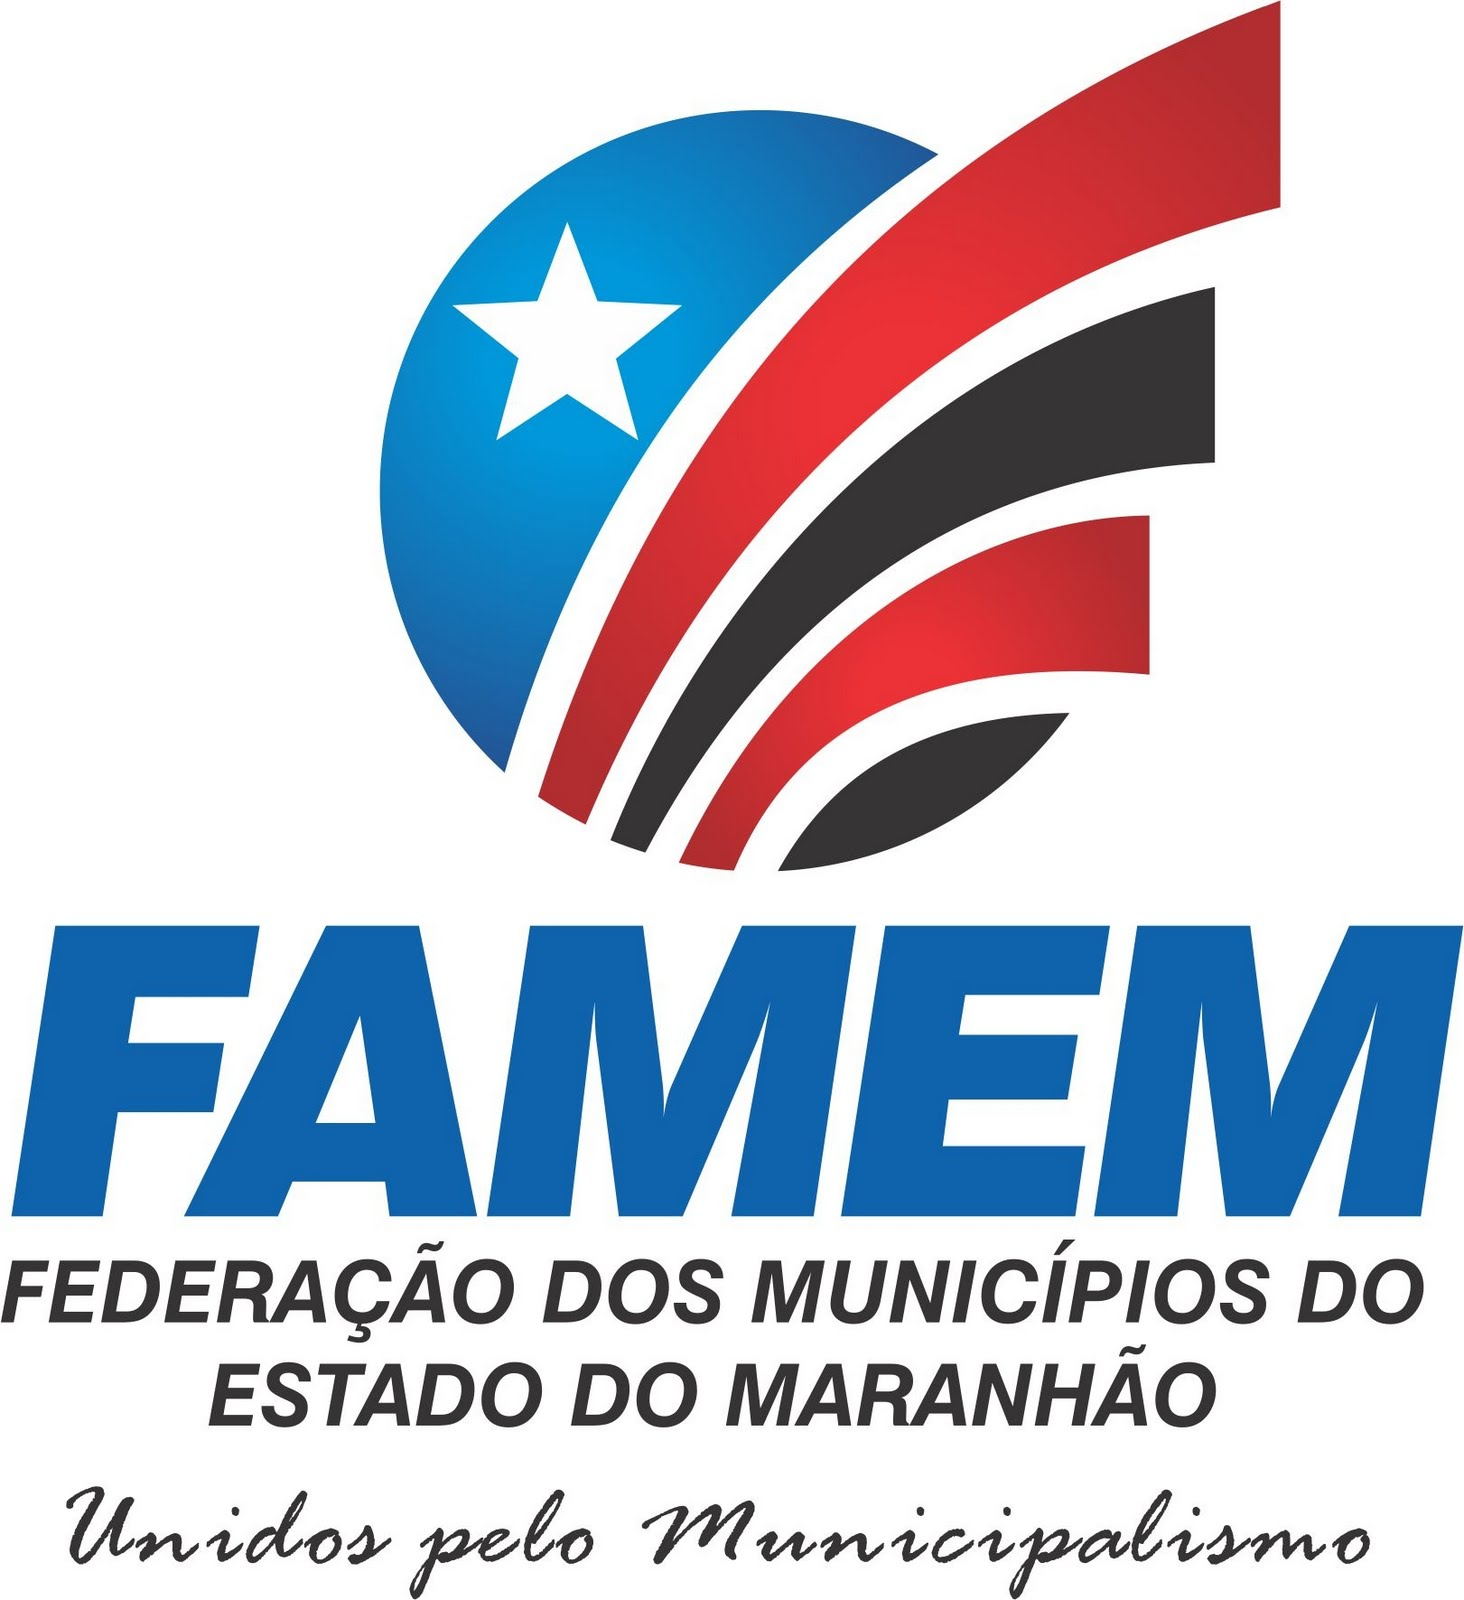 FAMEM. FEDERAÇÃO DOS MUNICÍPIOS DO ESTADO DO MARANHÃO